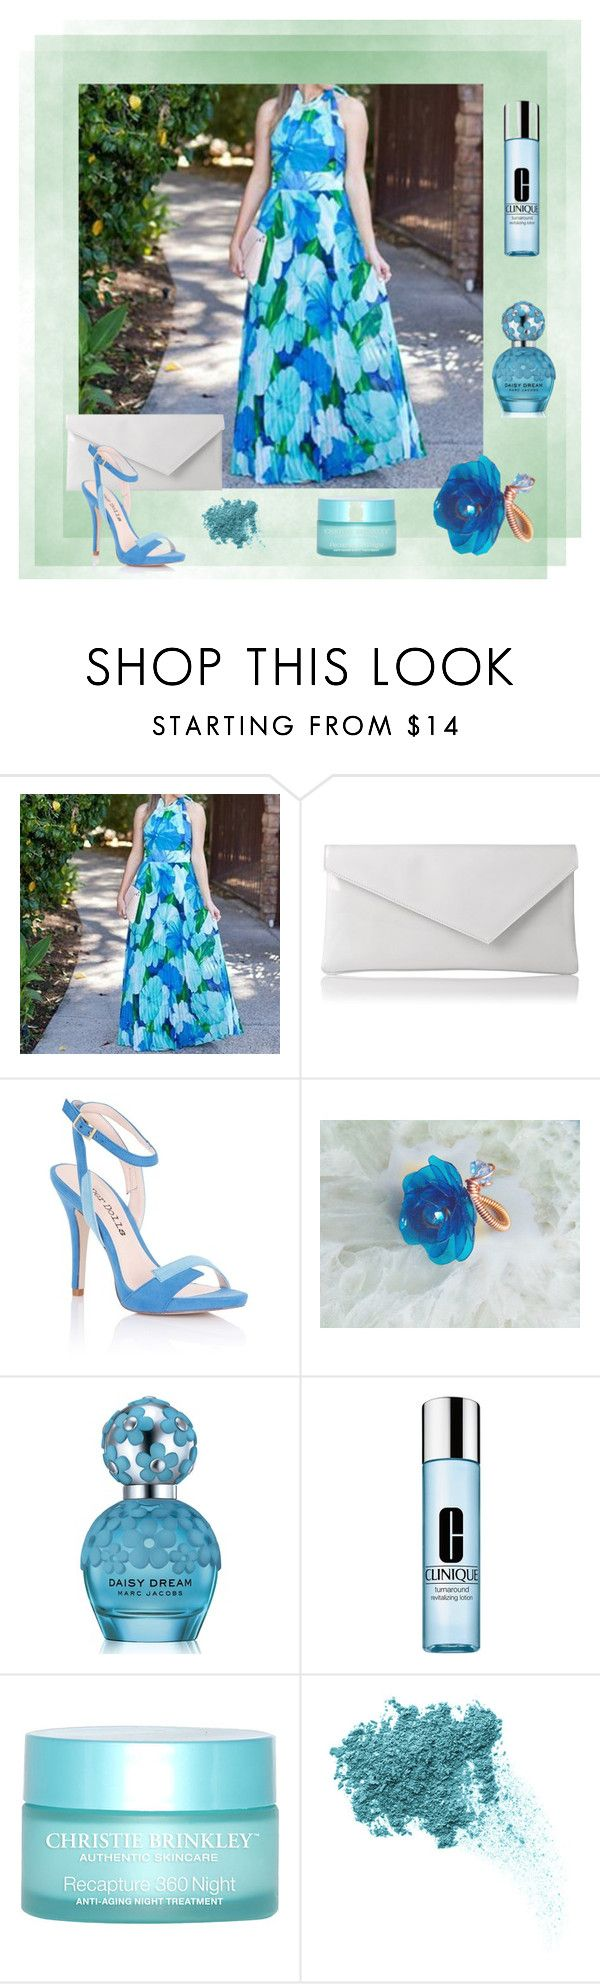 """Blue & Turquoise"" by styledonna on Polyvore featuring moda, Rene, Joelle, L.K.Bennett, Lipsy, Marc Jacobs, Clinique, SkinCare i Bare Escentuals"